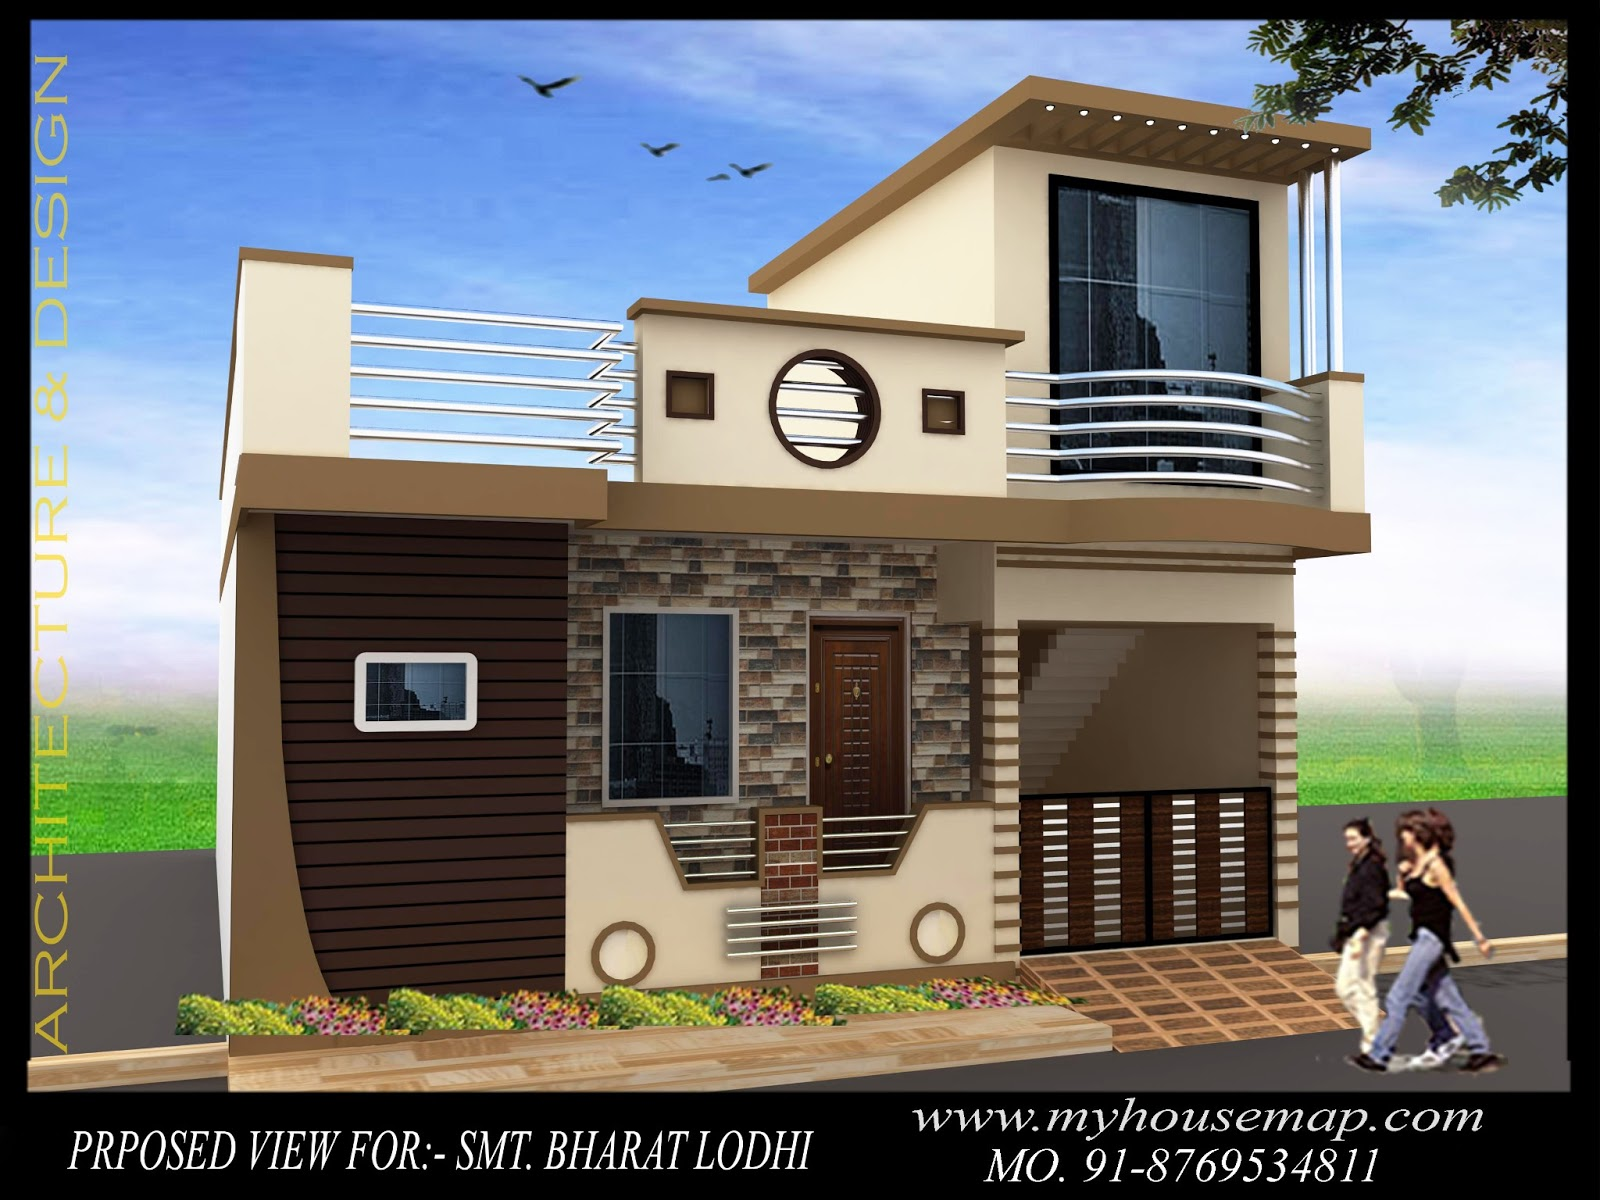 My House Map  house map design india   Home Design Catalog My House Map  house map design india